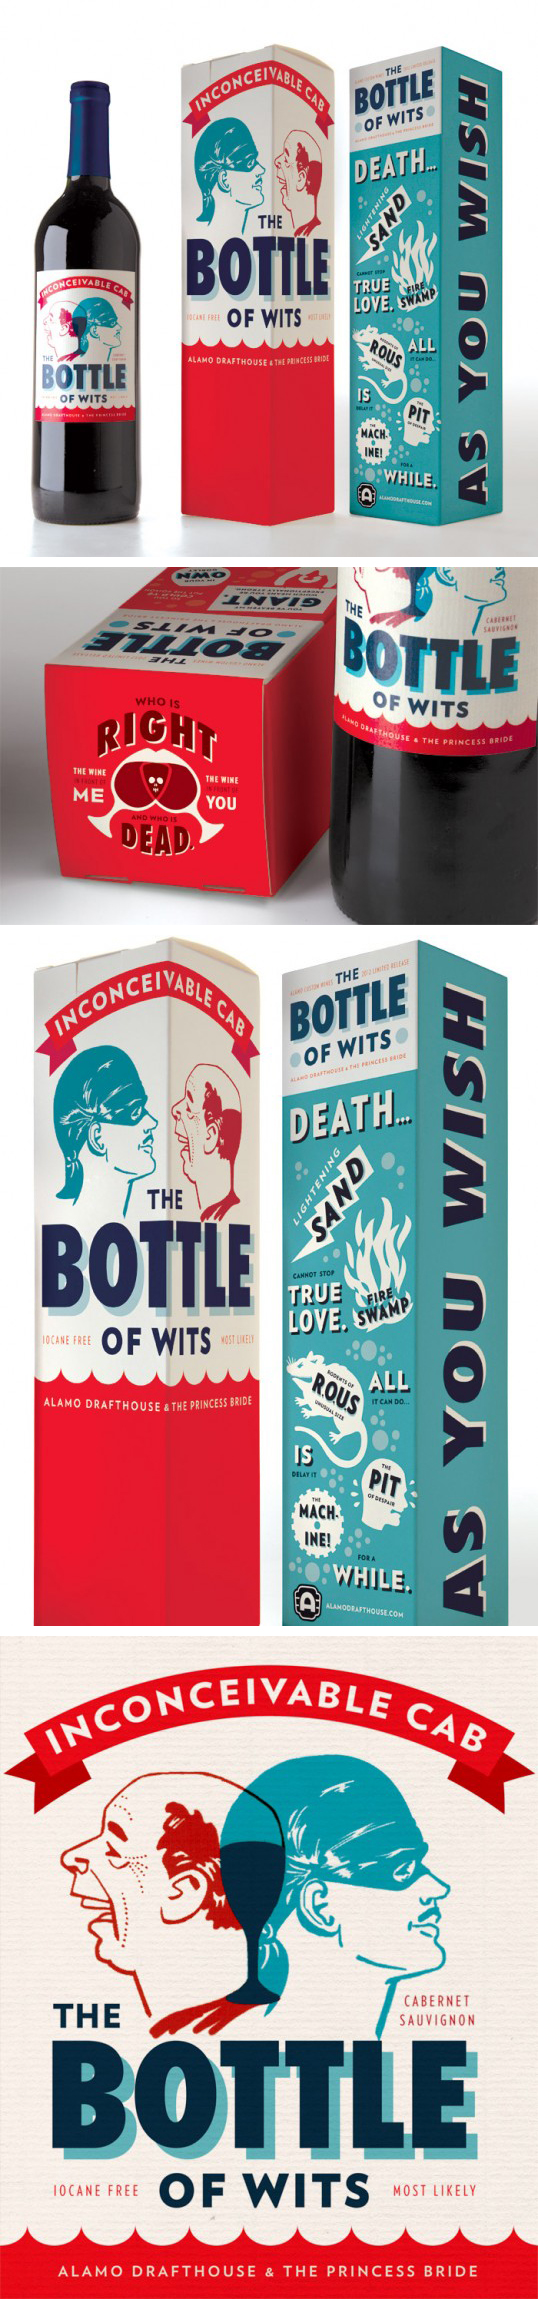 The Botle Of Wits With Images Wine Packaging Design Brand Packaging Bottle Packaging